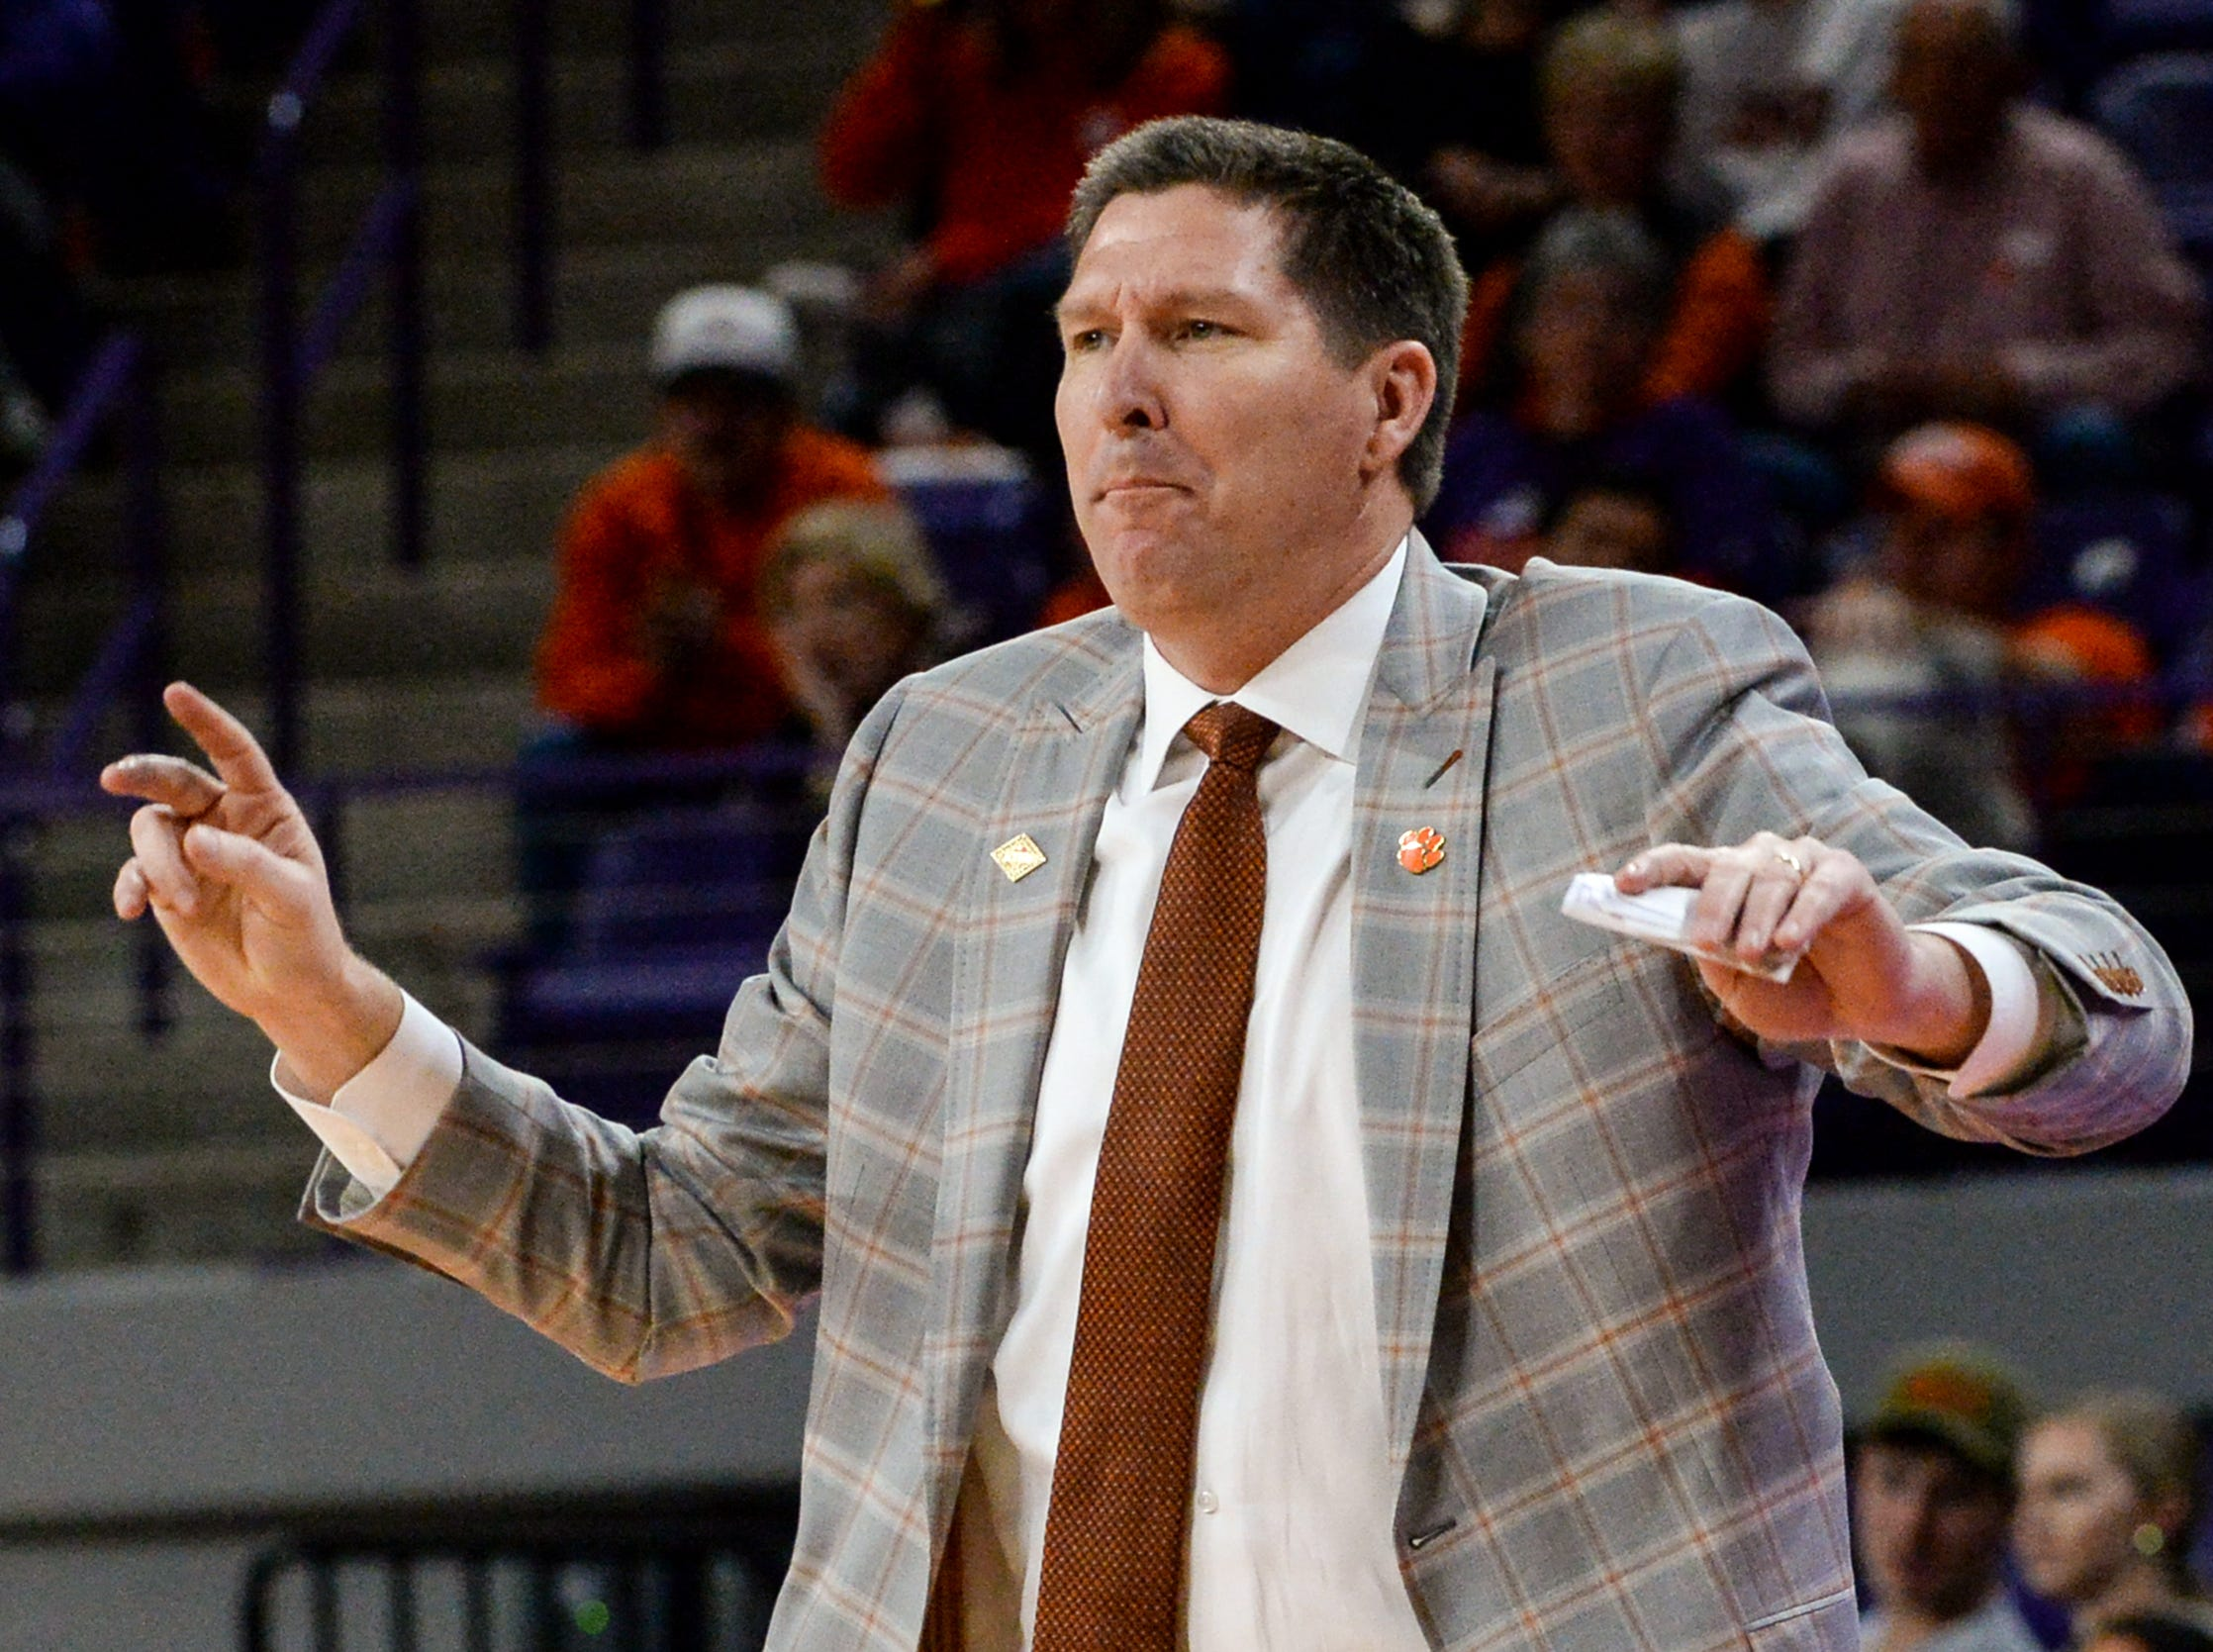 Clemson head coach Brad Brownell during the second half of the NIT at Littlejohn Coliseum in Clemson Tuesday, March 19, 2019.